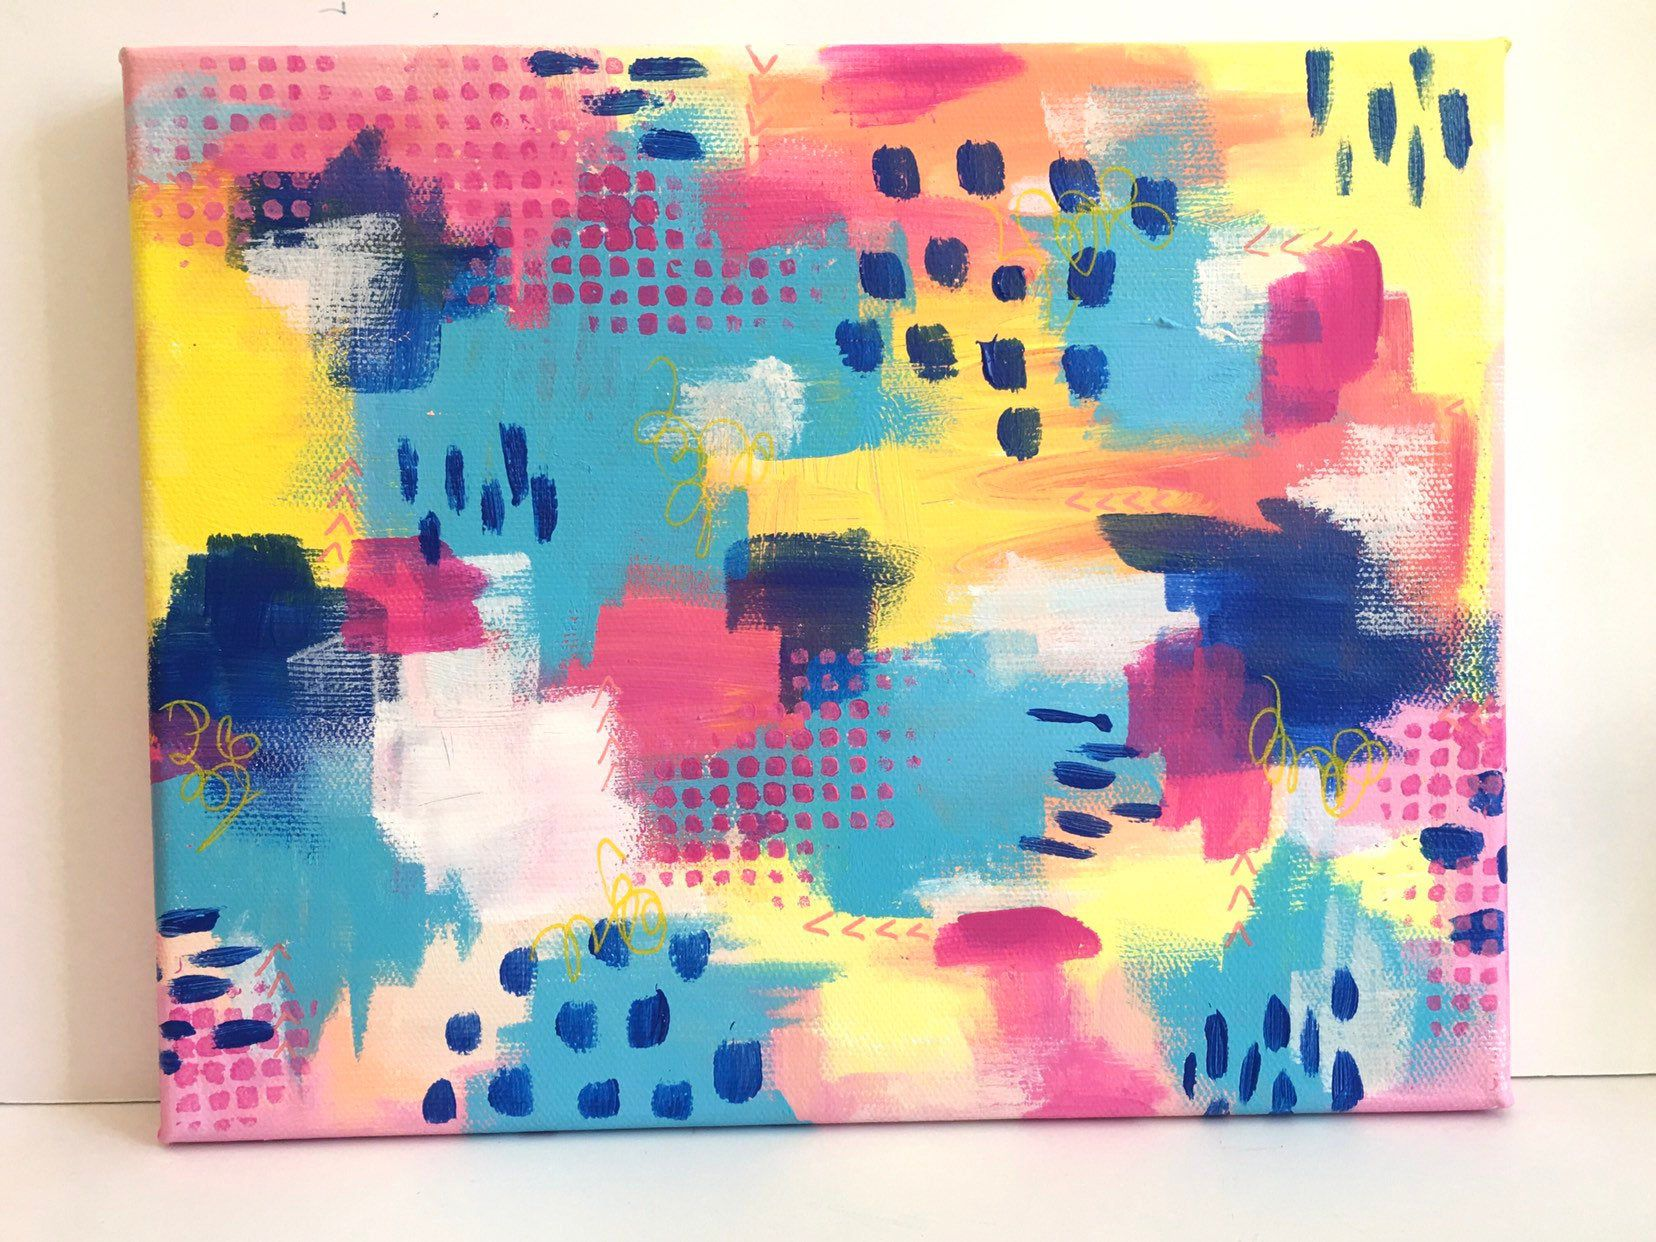 Bright Cheerful Artwork Abstract Acrylic Painting On Canvas Etsy In 2020 Cheerful Artwork Colorful Abstract Painting Abstract Painting Acrylic